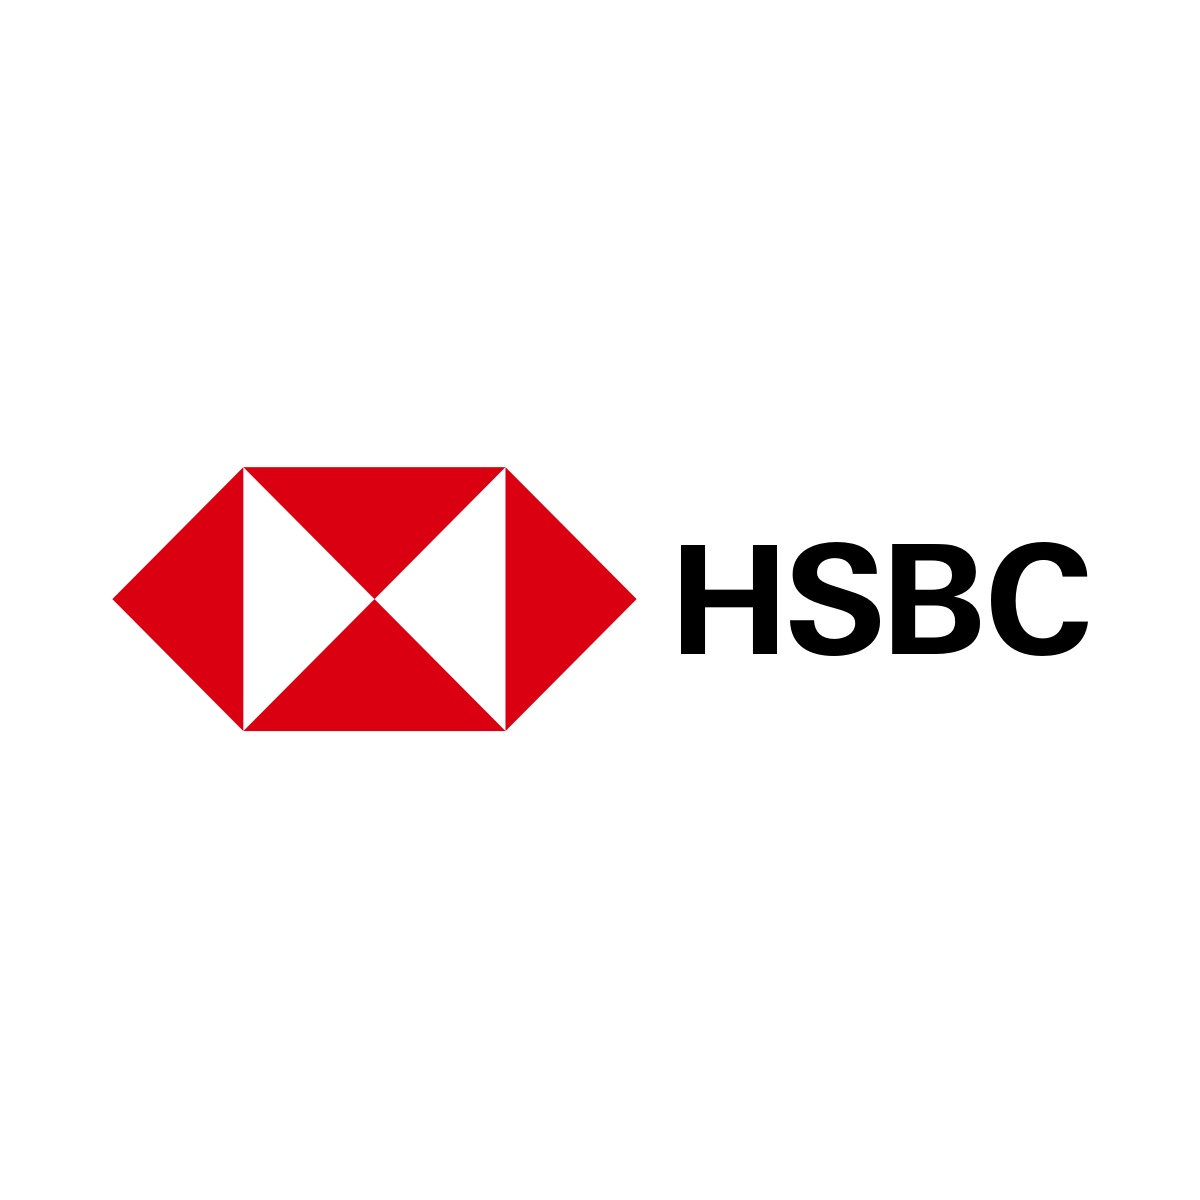 Mobile and online statements hsbc uk flashek Images